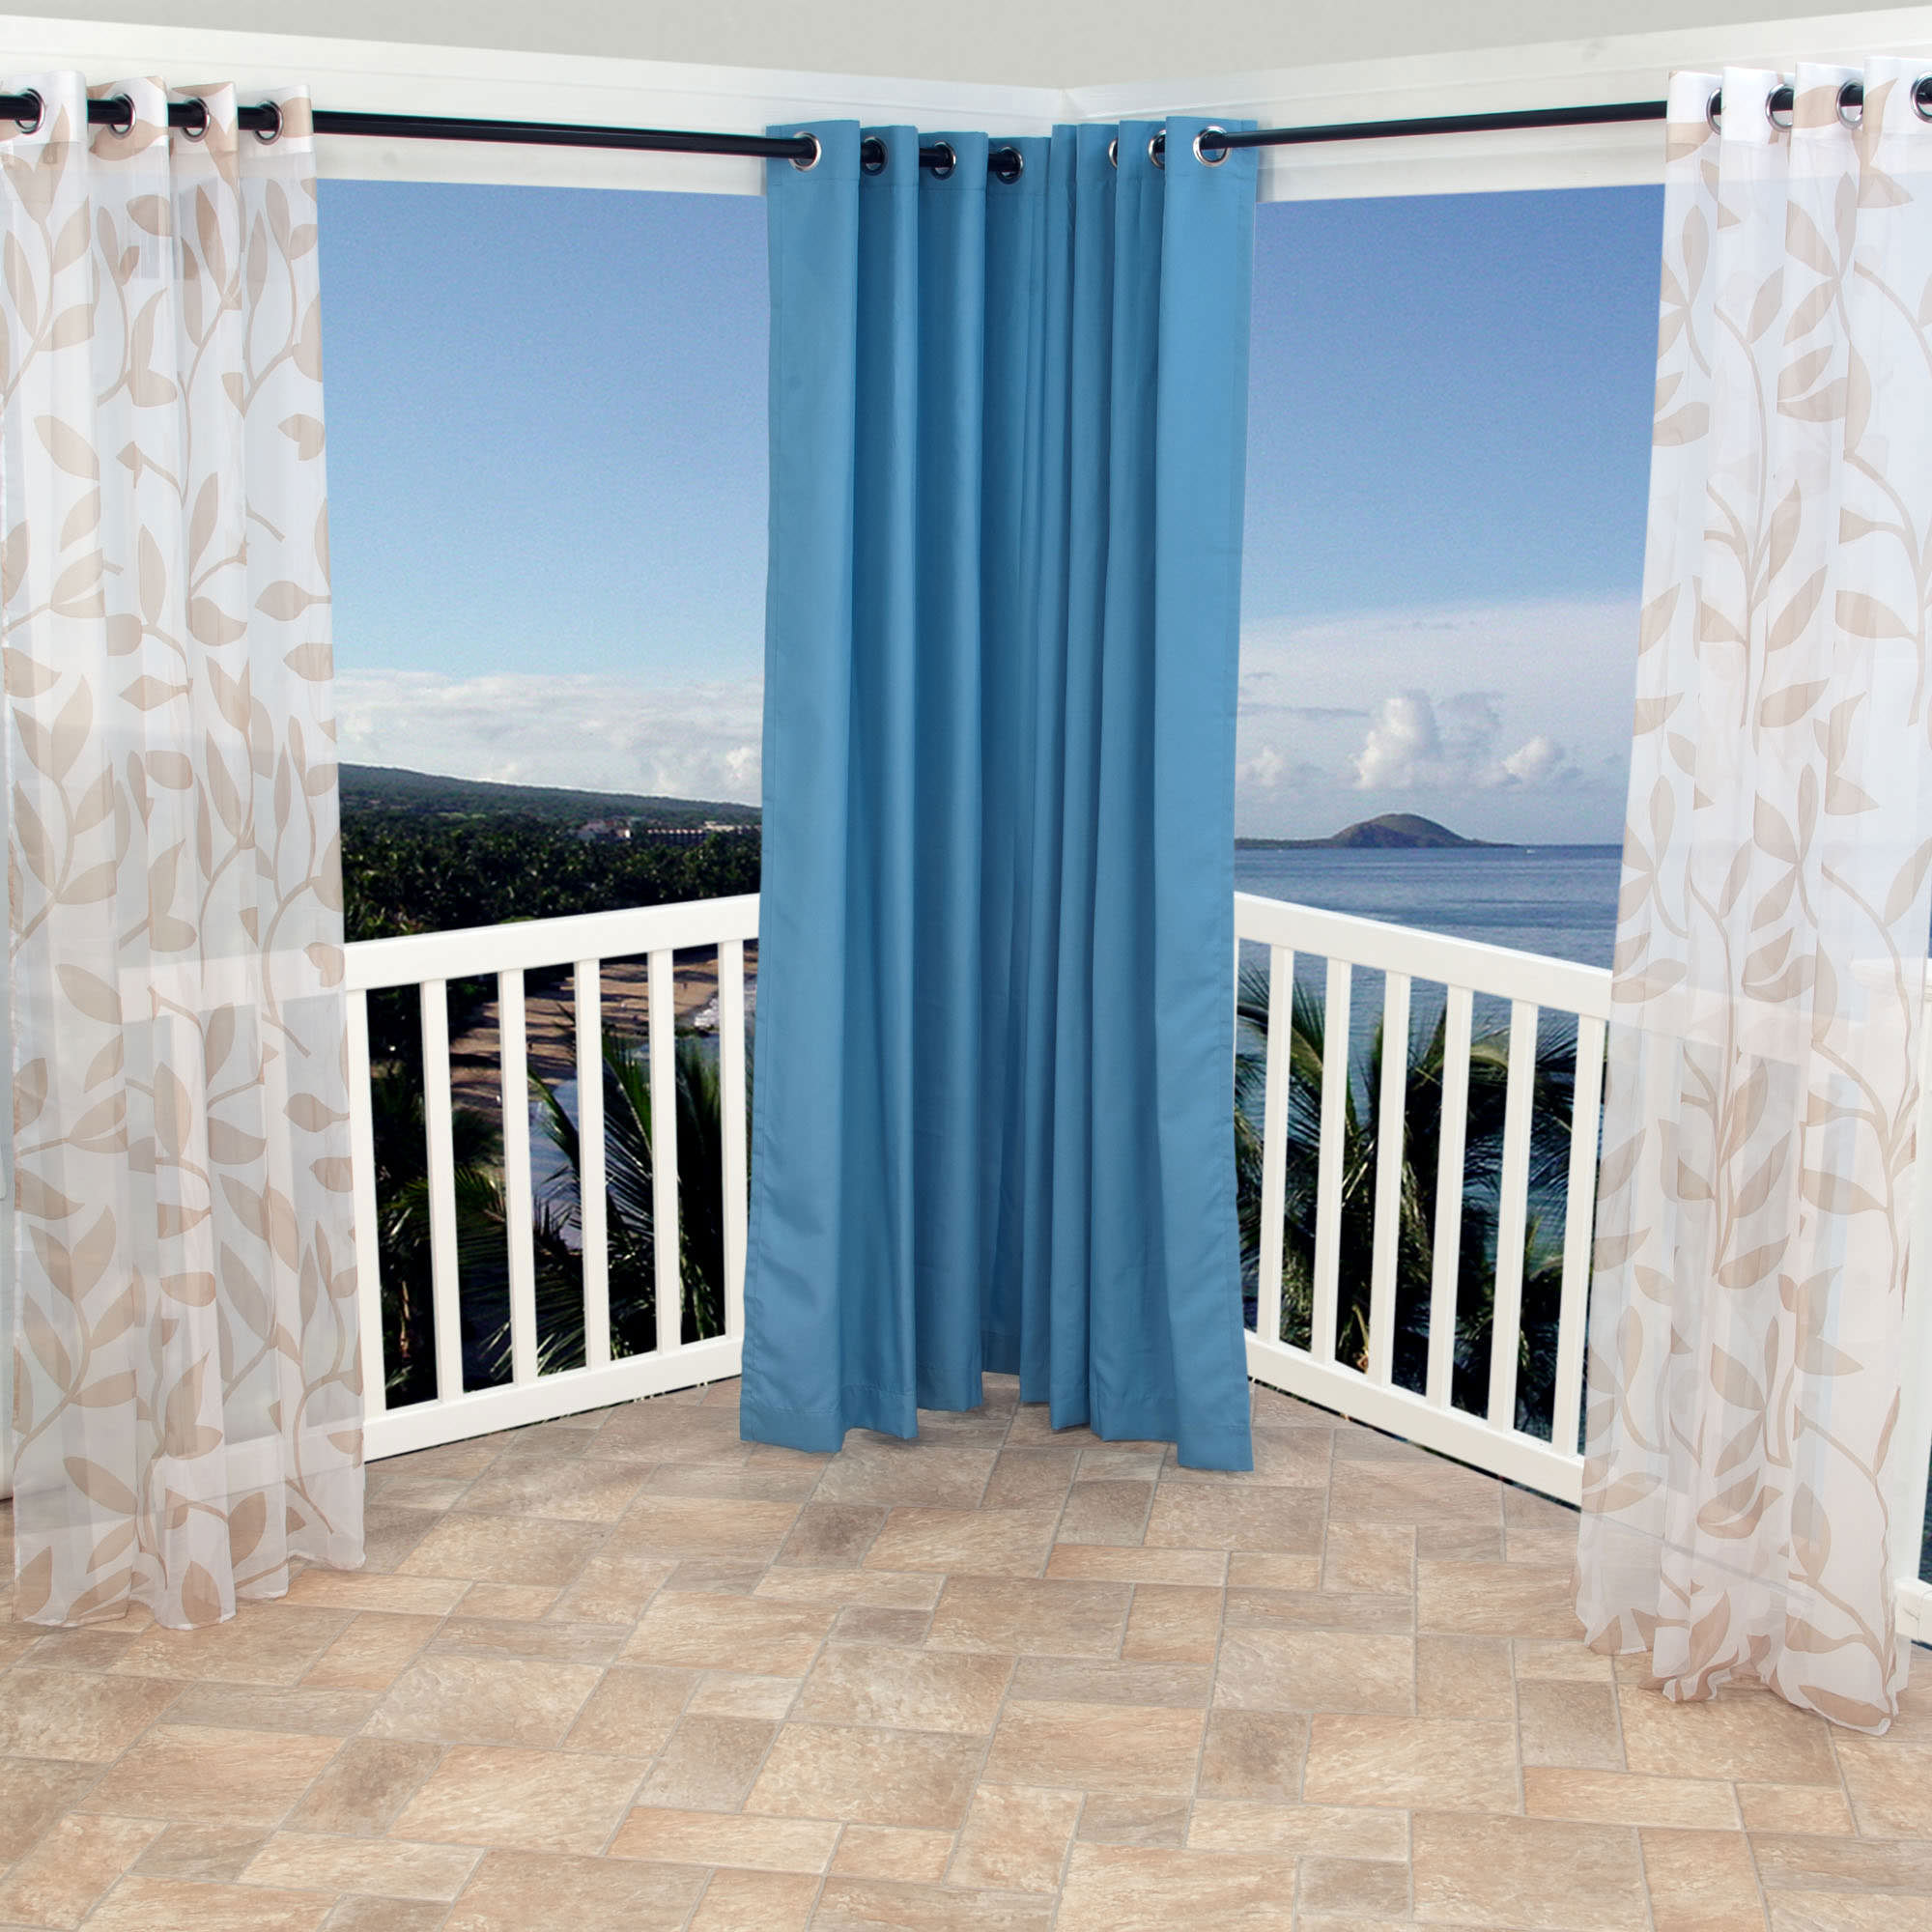 Shop Sheer Khaki Leaf Outdoor Curtains With Grommets 54 X 96 Commonwealth Curtains